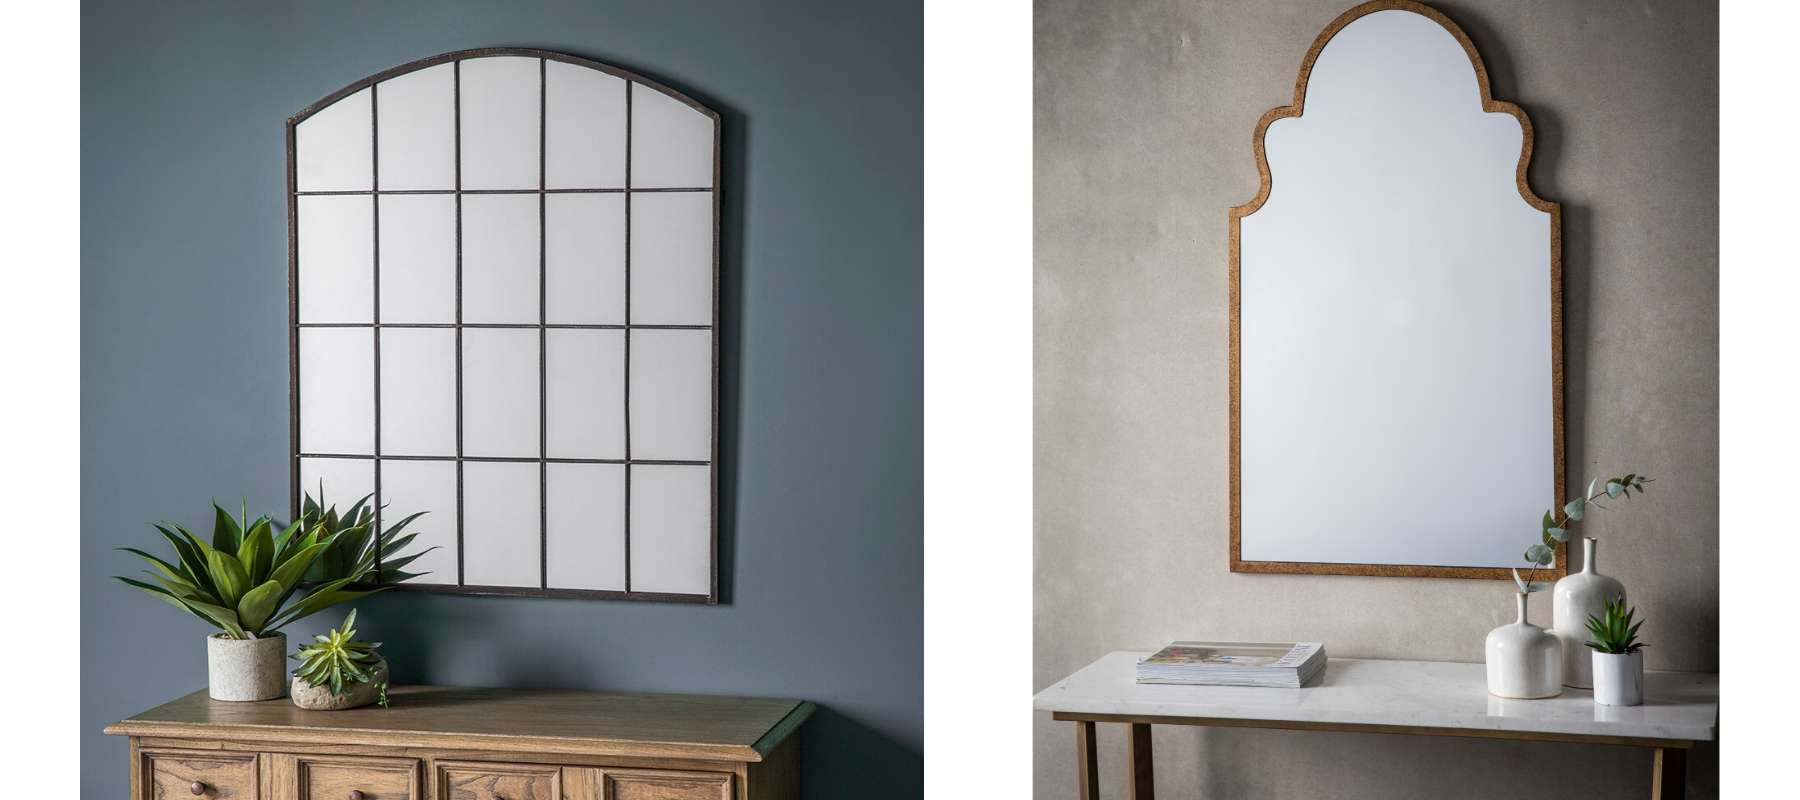 Large wall mirror with square sections and sculpted mirror above console table